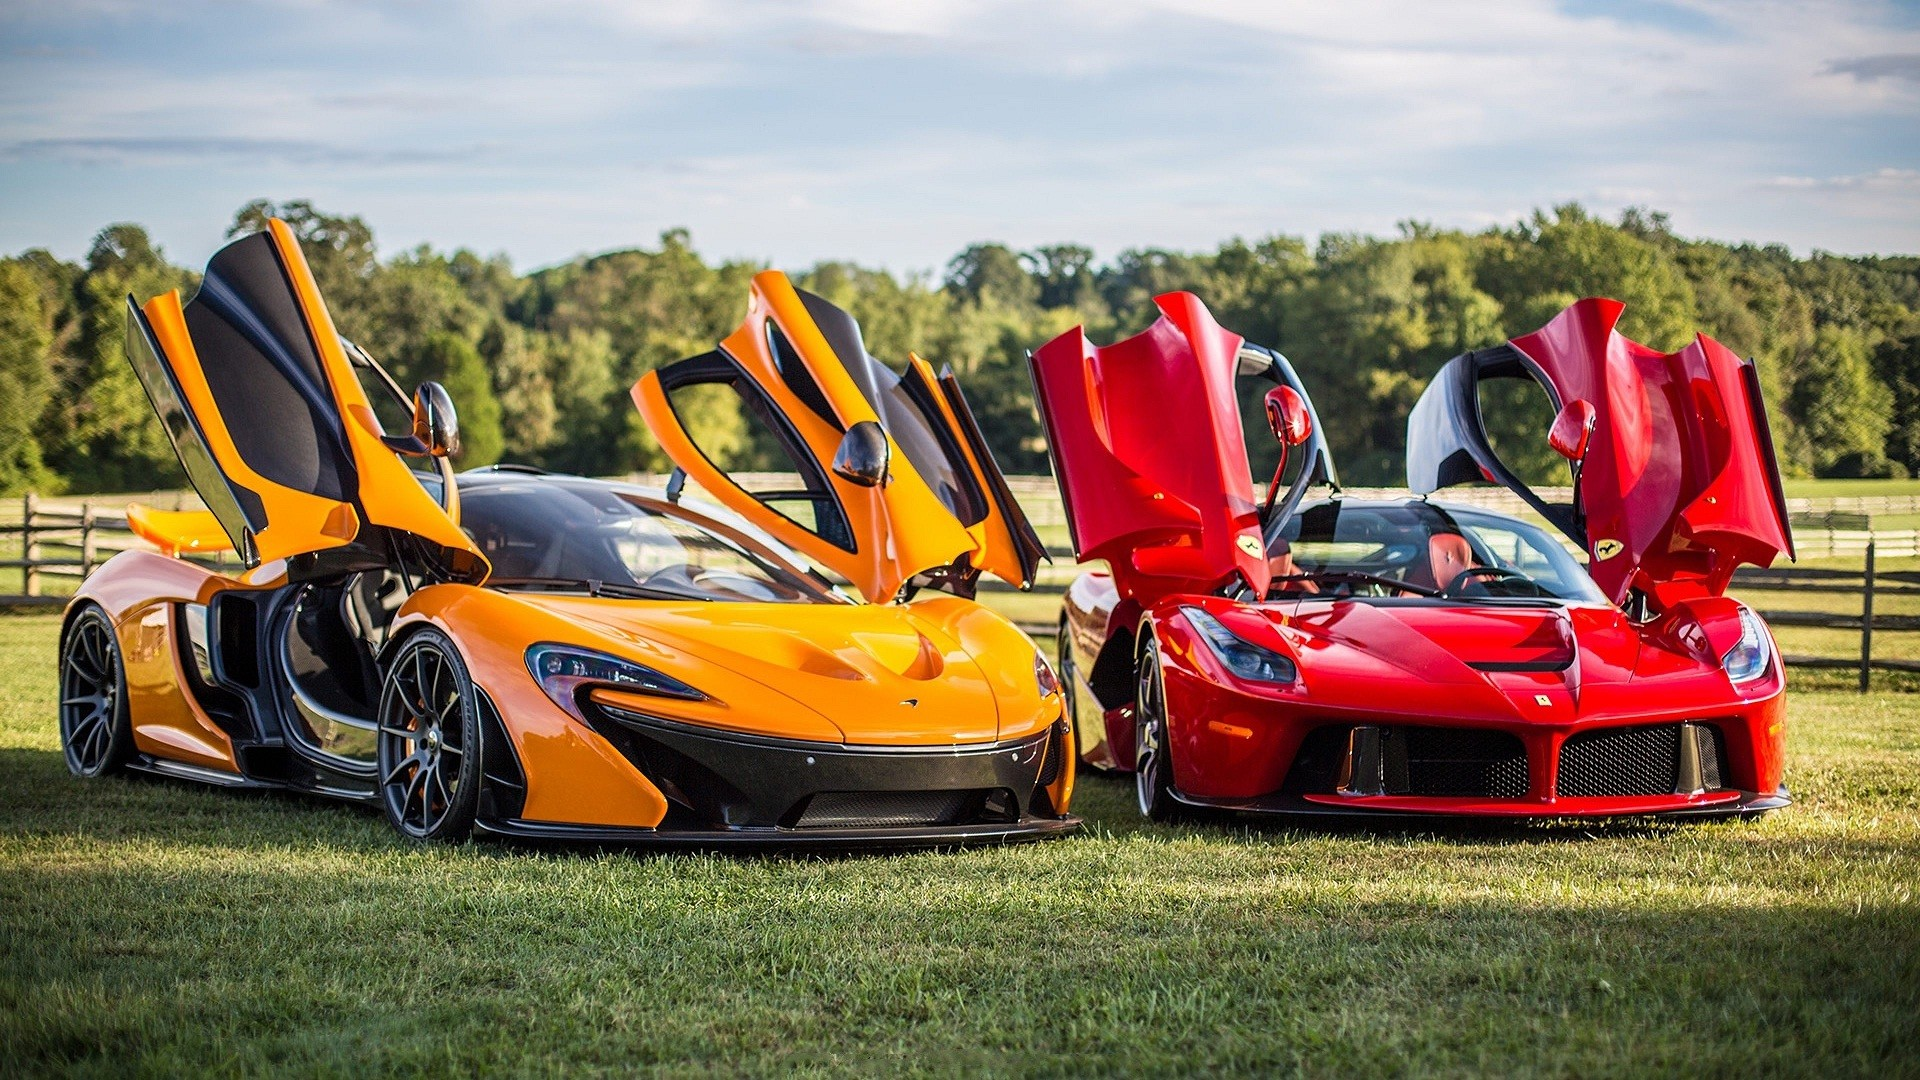 1920x1080 McLaren red and orange sports car wallpapers